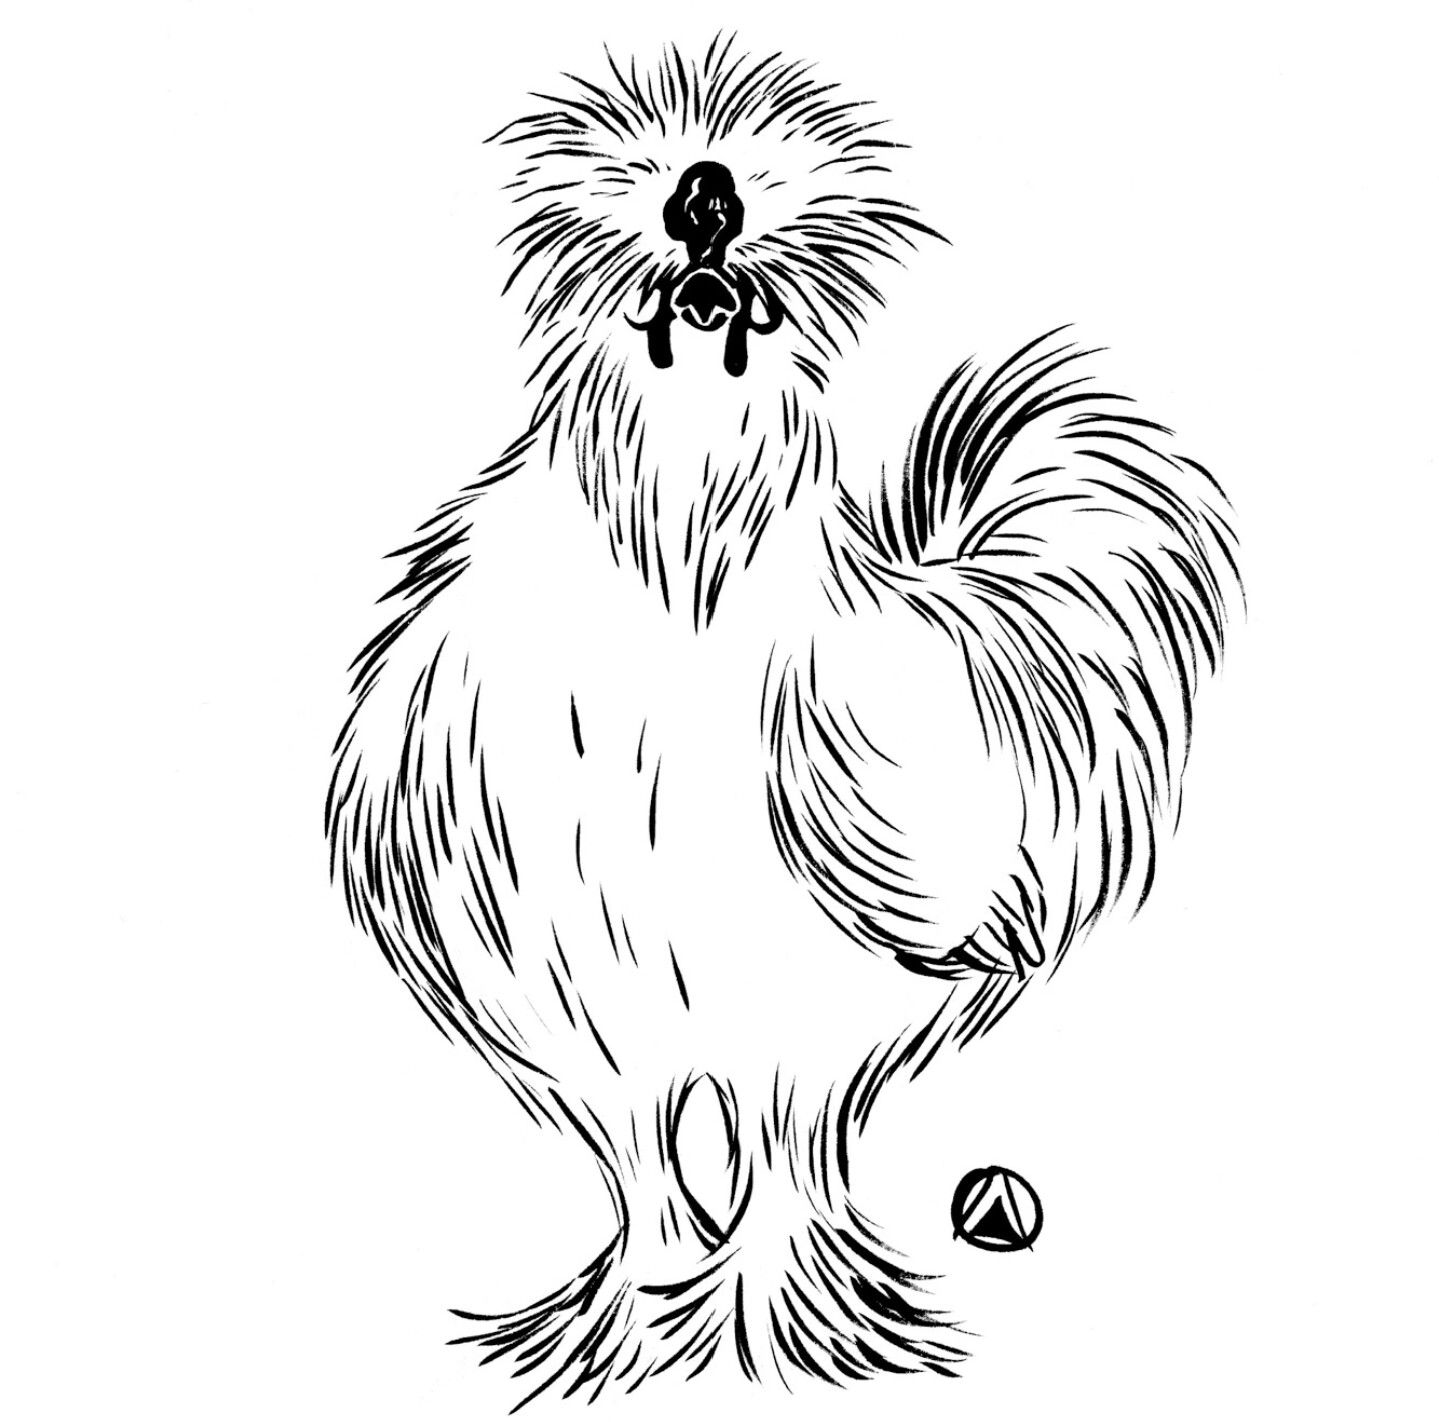 """Drawing by """"Too much Kale Salad."""" Chicken drawing"""